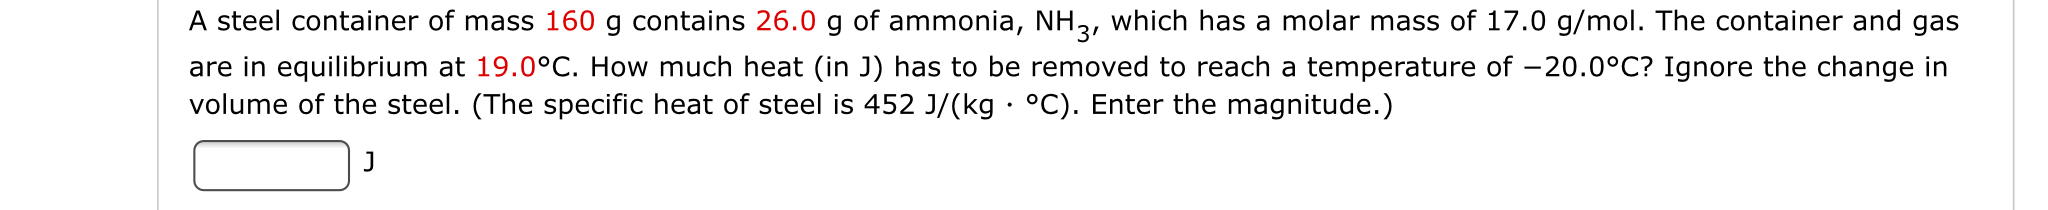 A steel container of mass 160 g contains 26.0 g of ammonia, NH2, which has a molar mass of 17.0 g/mol. The container and gas are in equilibrium at 19.0°C. How much heat (in J) has to be removed to reach a temperature of volume of the steel. (The specific heat of steel is 452 J/(kg °C). Enter the magnitude.) 20.0°C? Ignore the change in